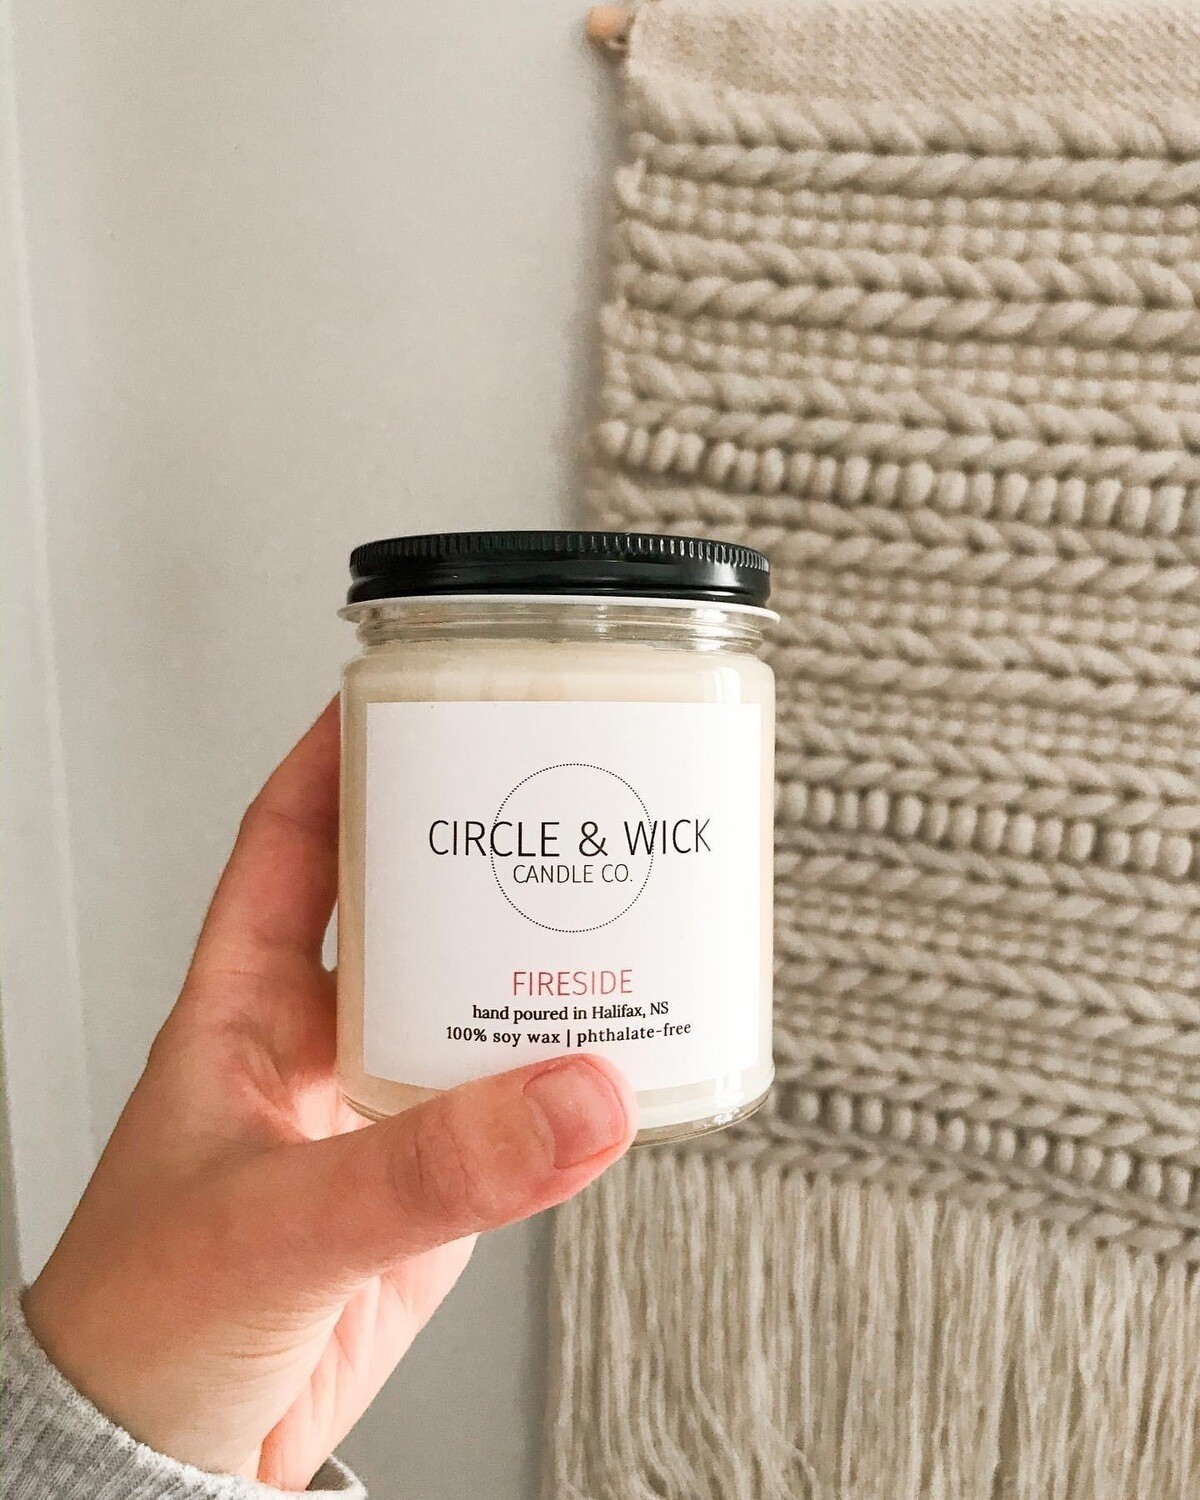 Circle & Wick Fireside Candle